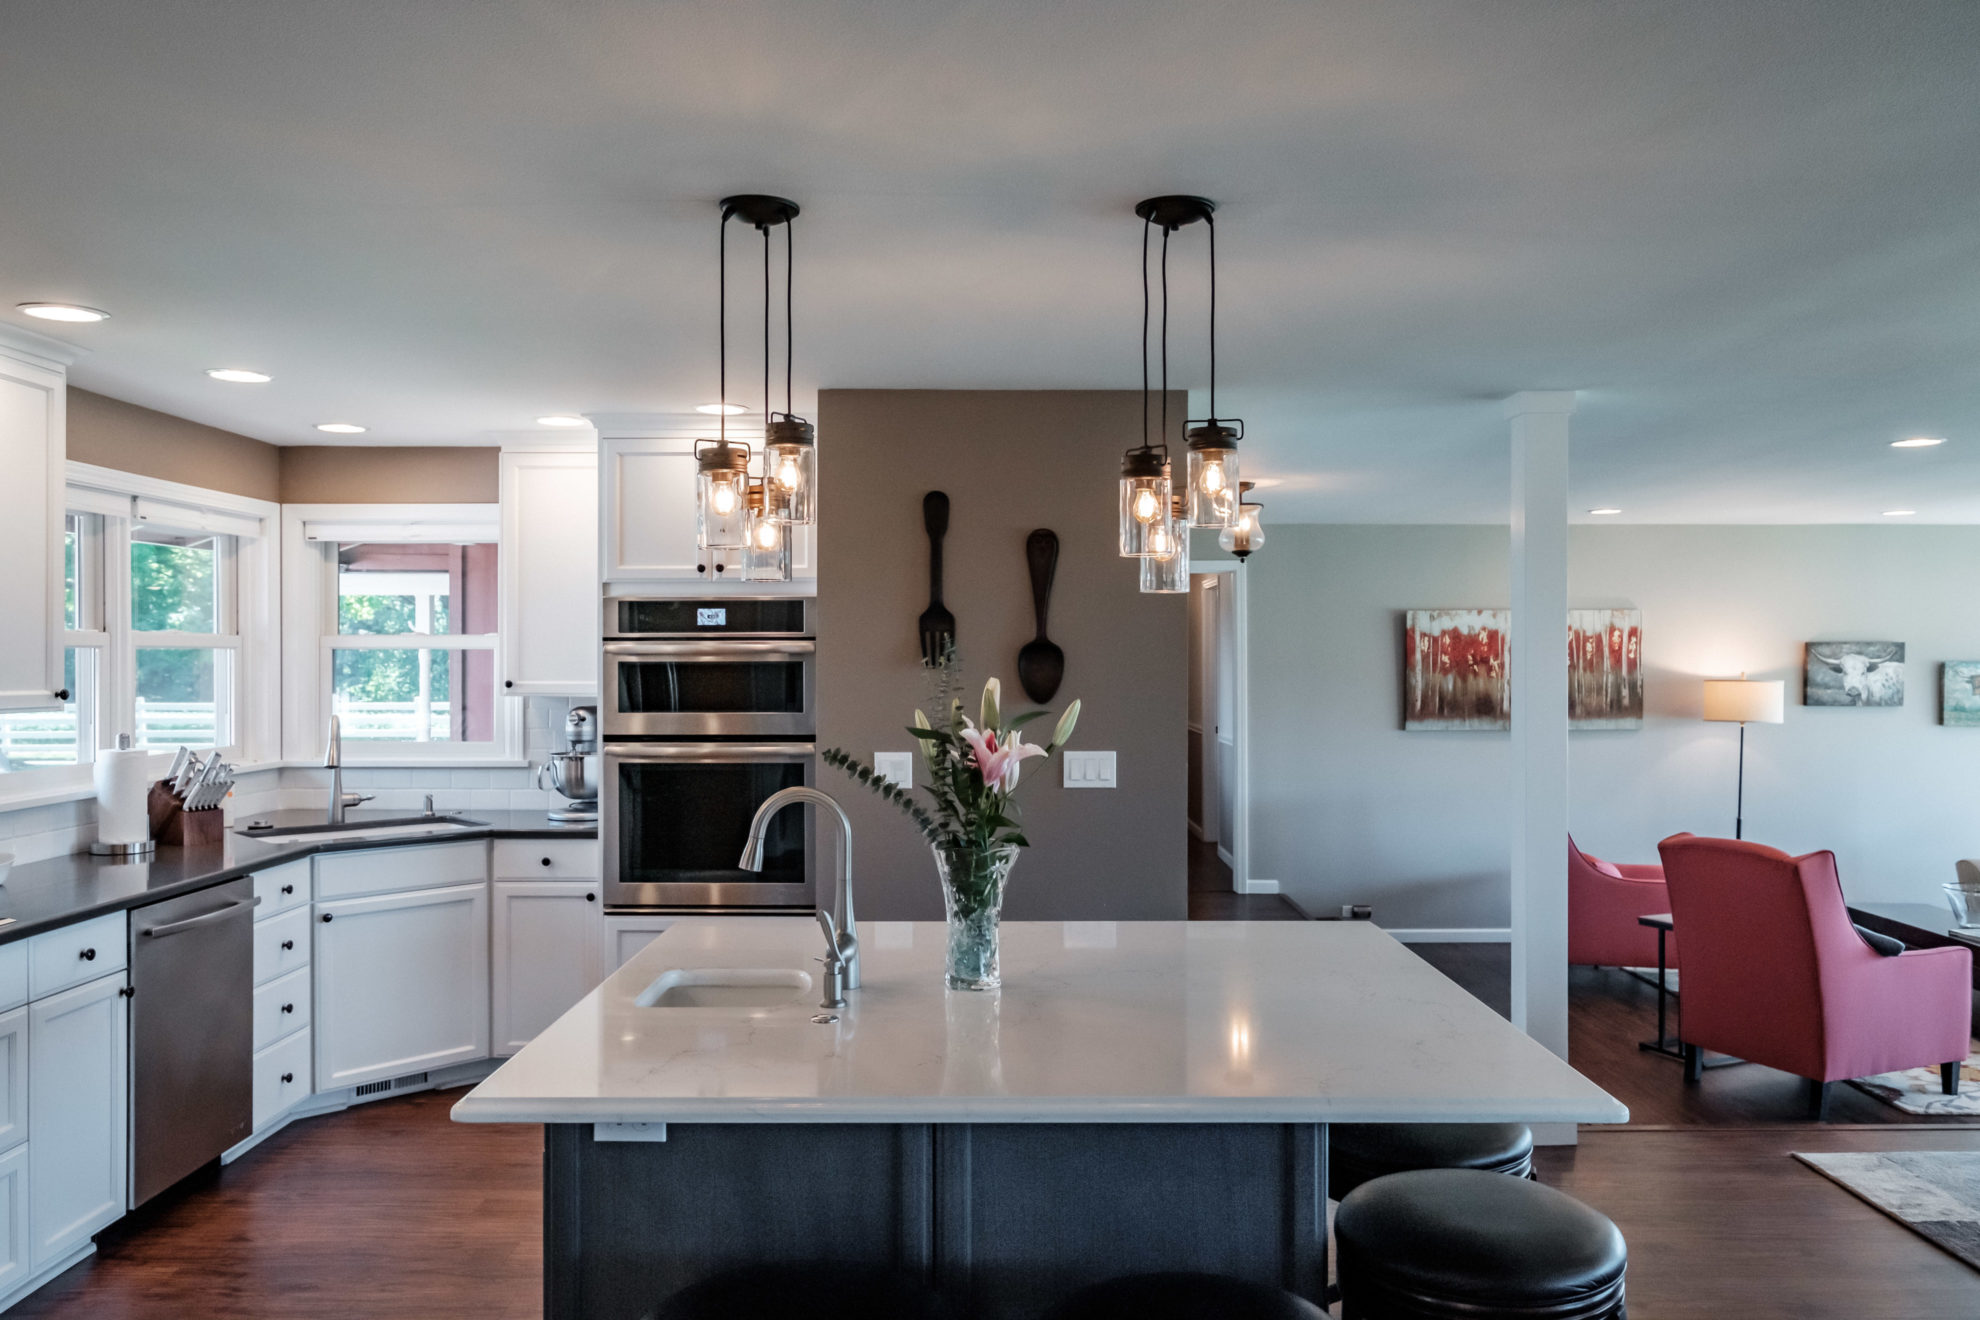 Extended Stay Vacation Rental VRBO Corvallis